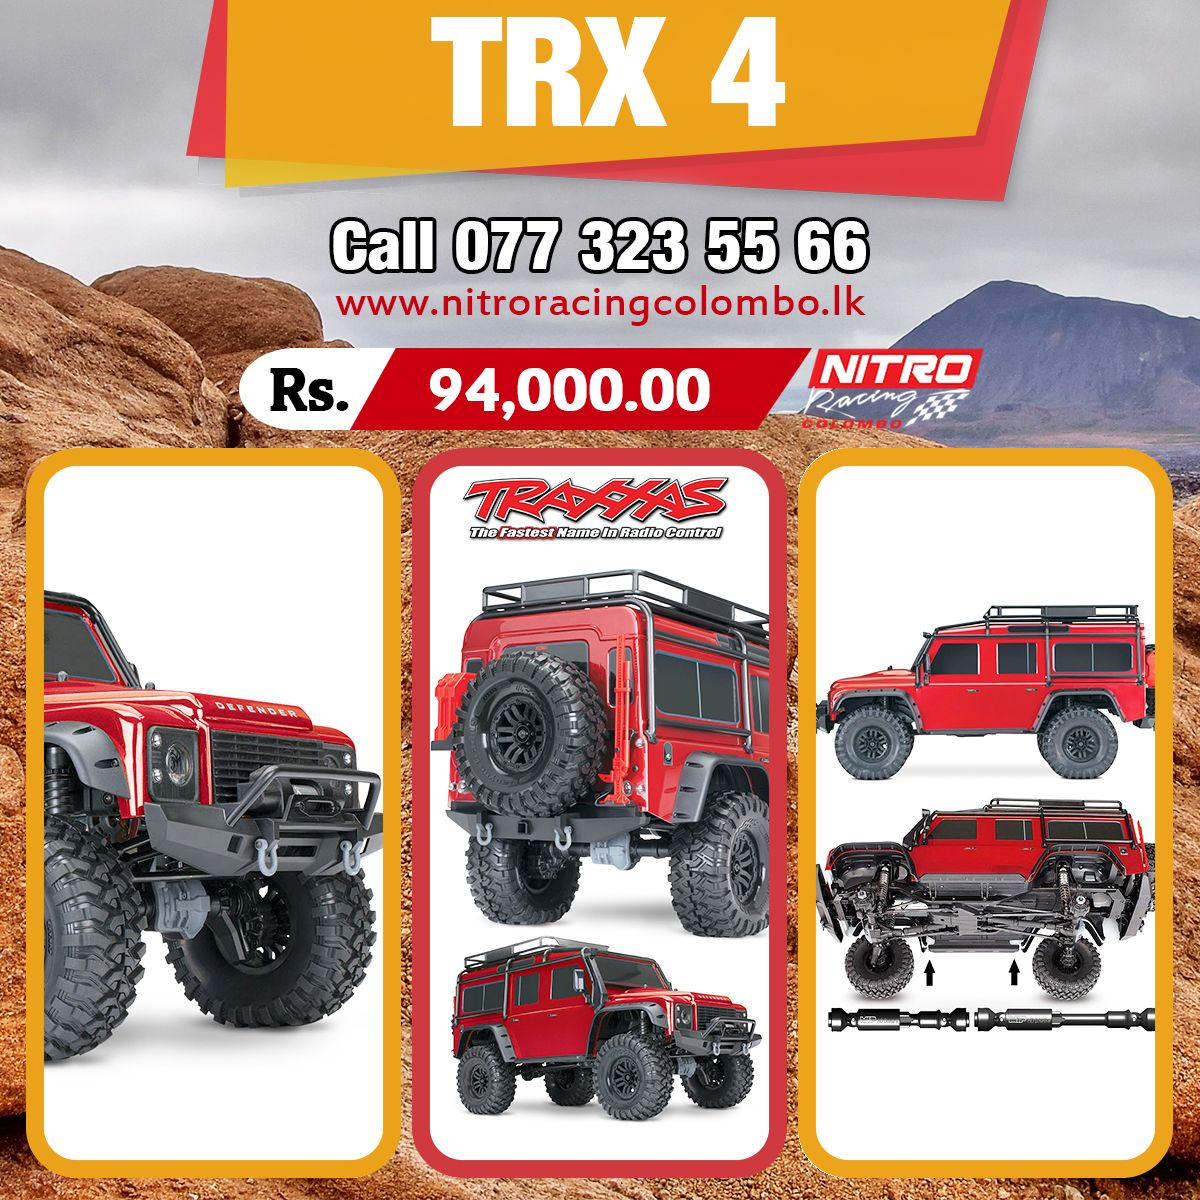 Traxxas Trx 4 Hd Image Defender Limited Edition Price In Sri Lanka